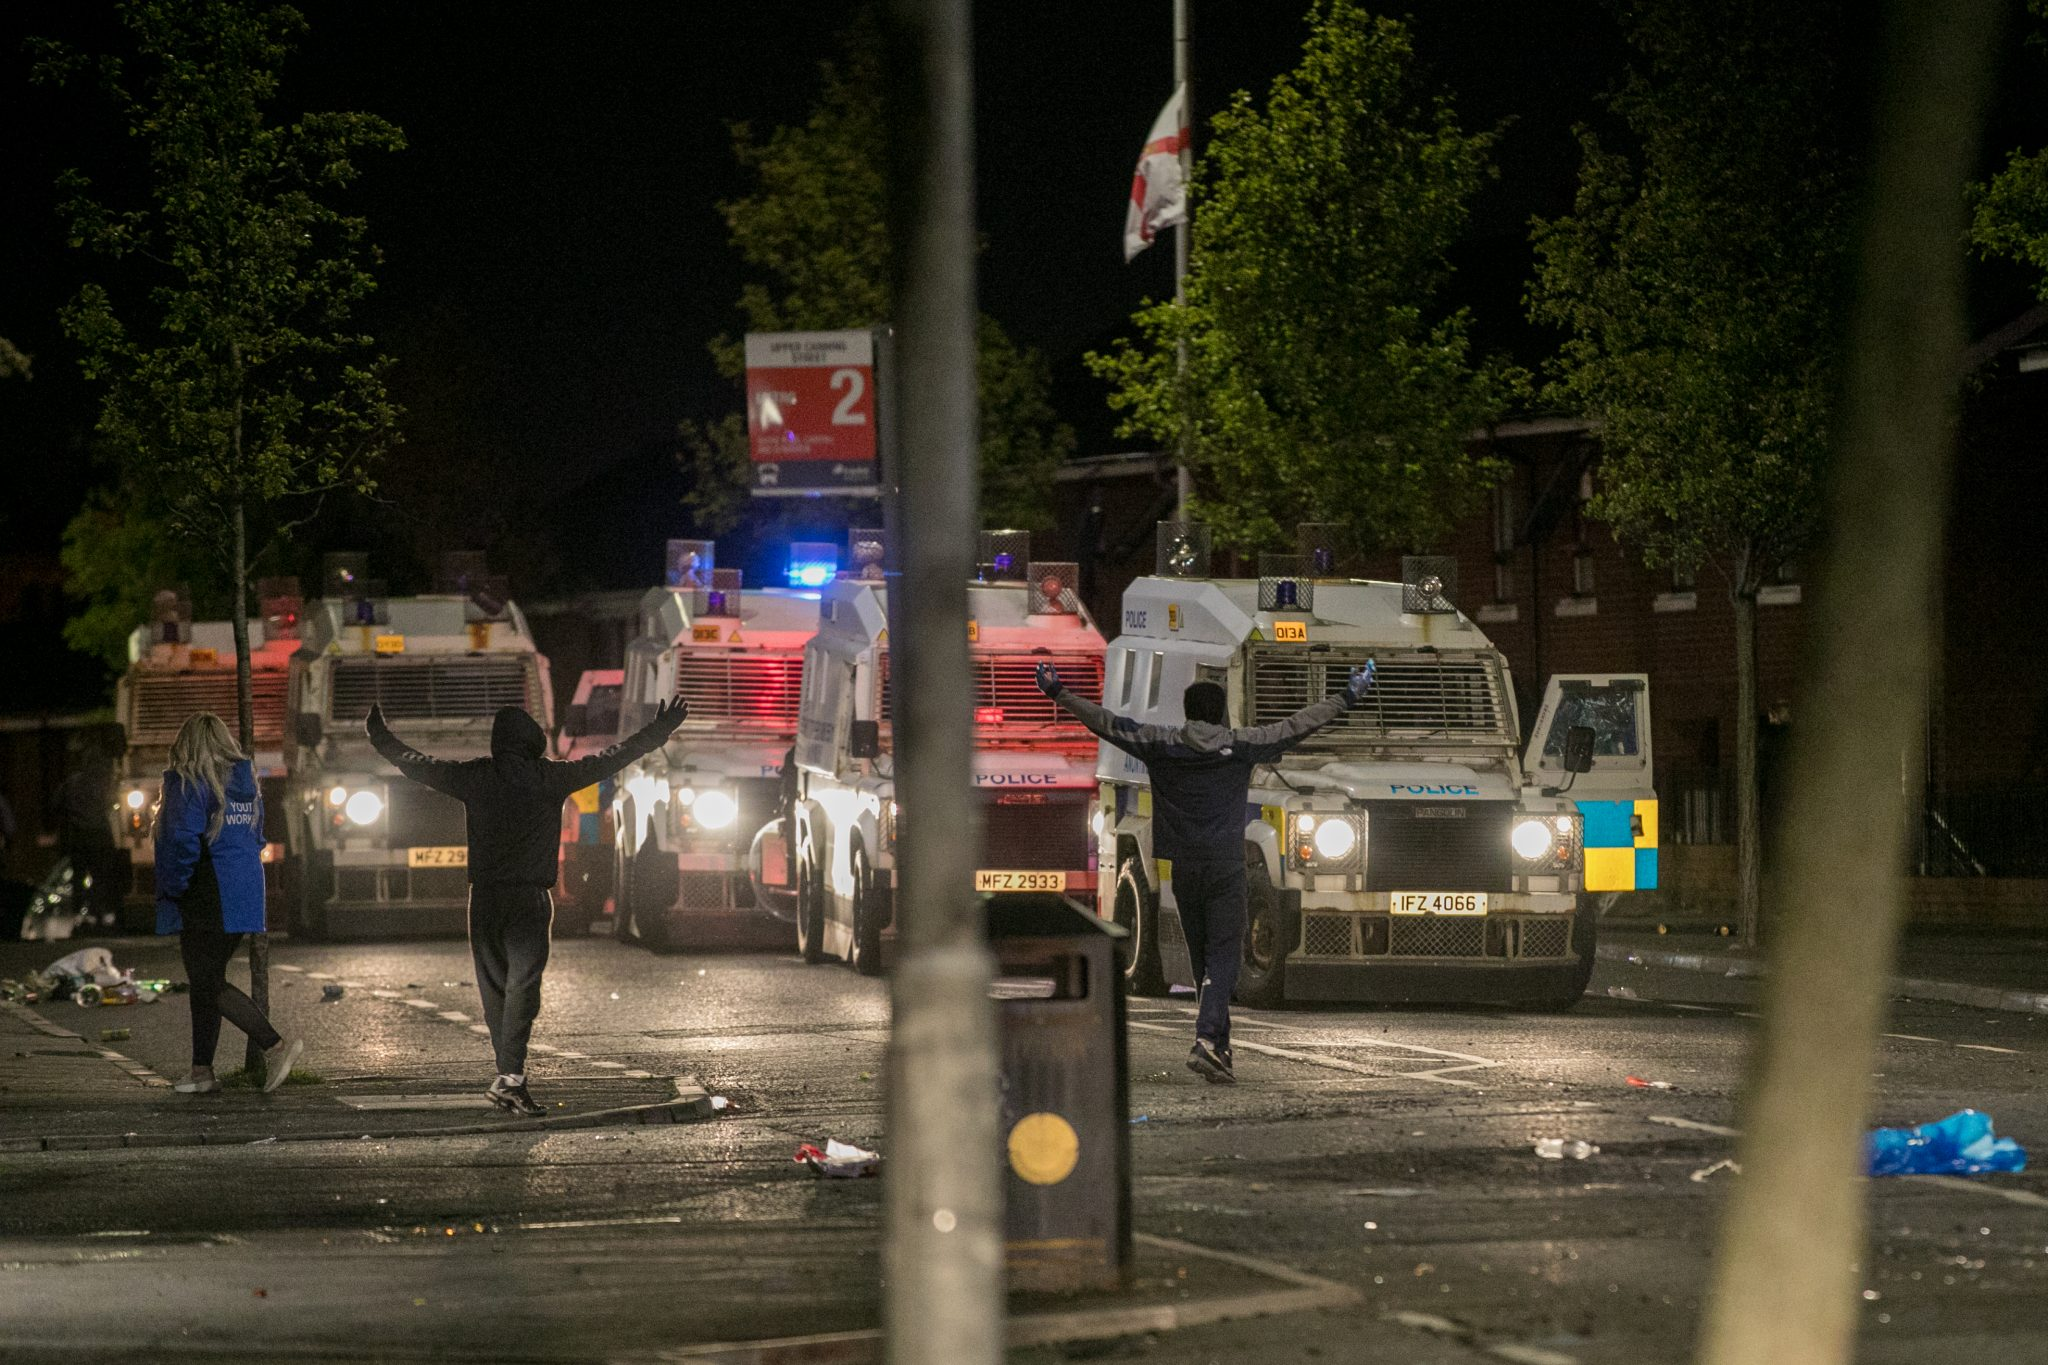 Two men taunt police officers in their riot vans, spreading their arms wide above their heads, a flag bearing the Red Hand of Ulster flies in the background